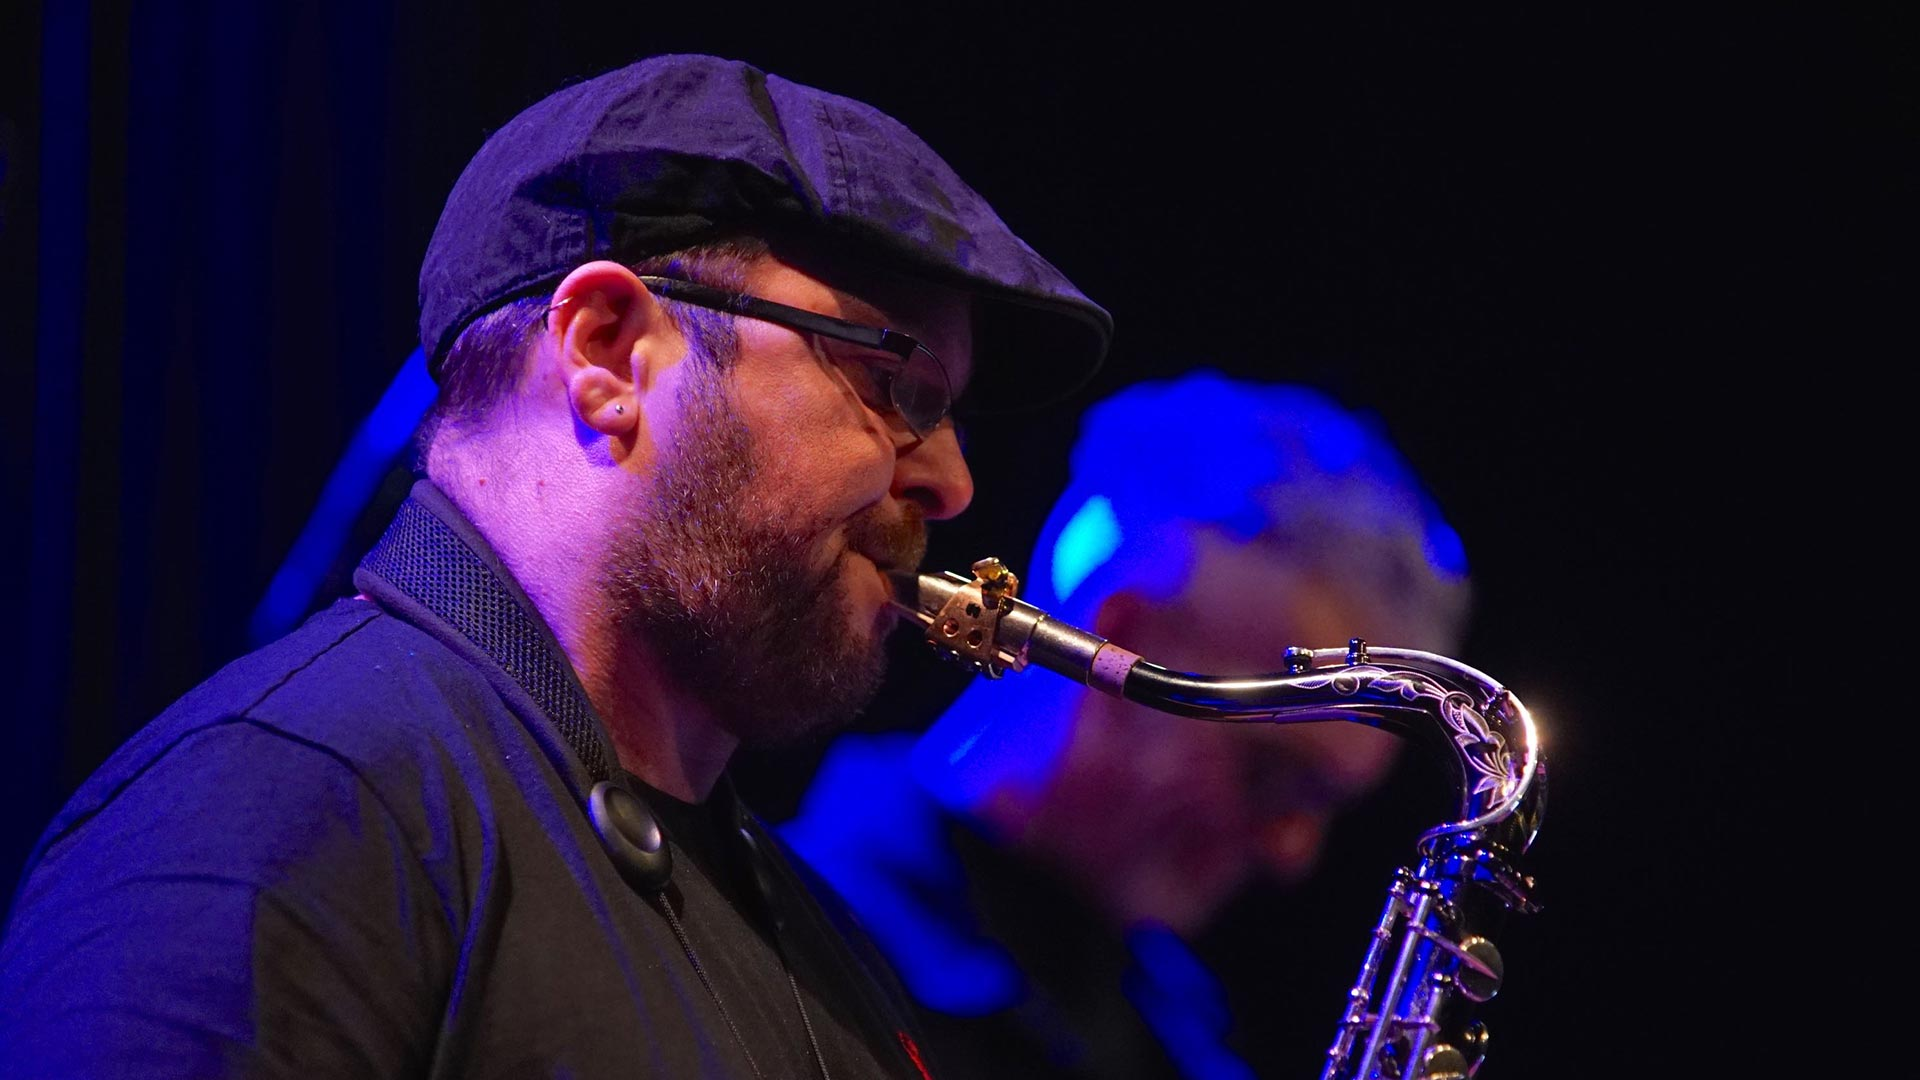 Close up of Chris Aldridge playing sax wearing a flat cap